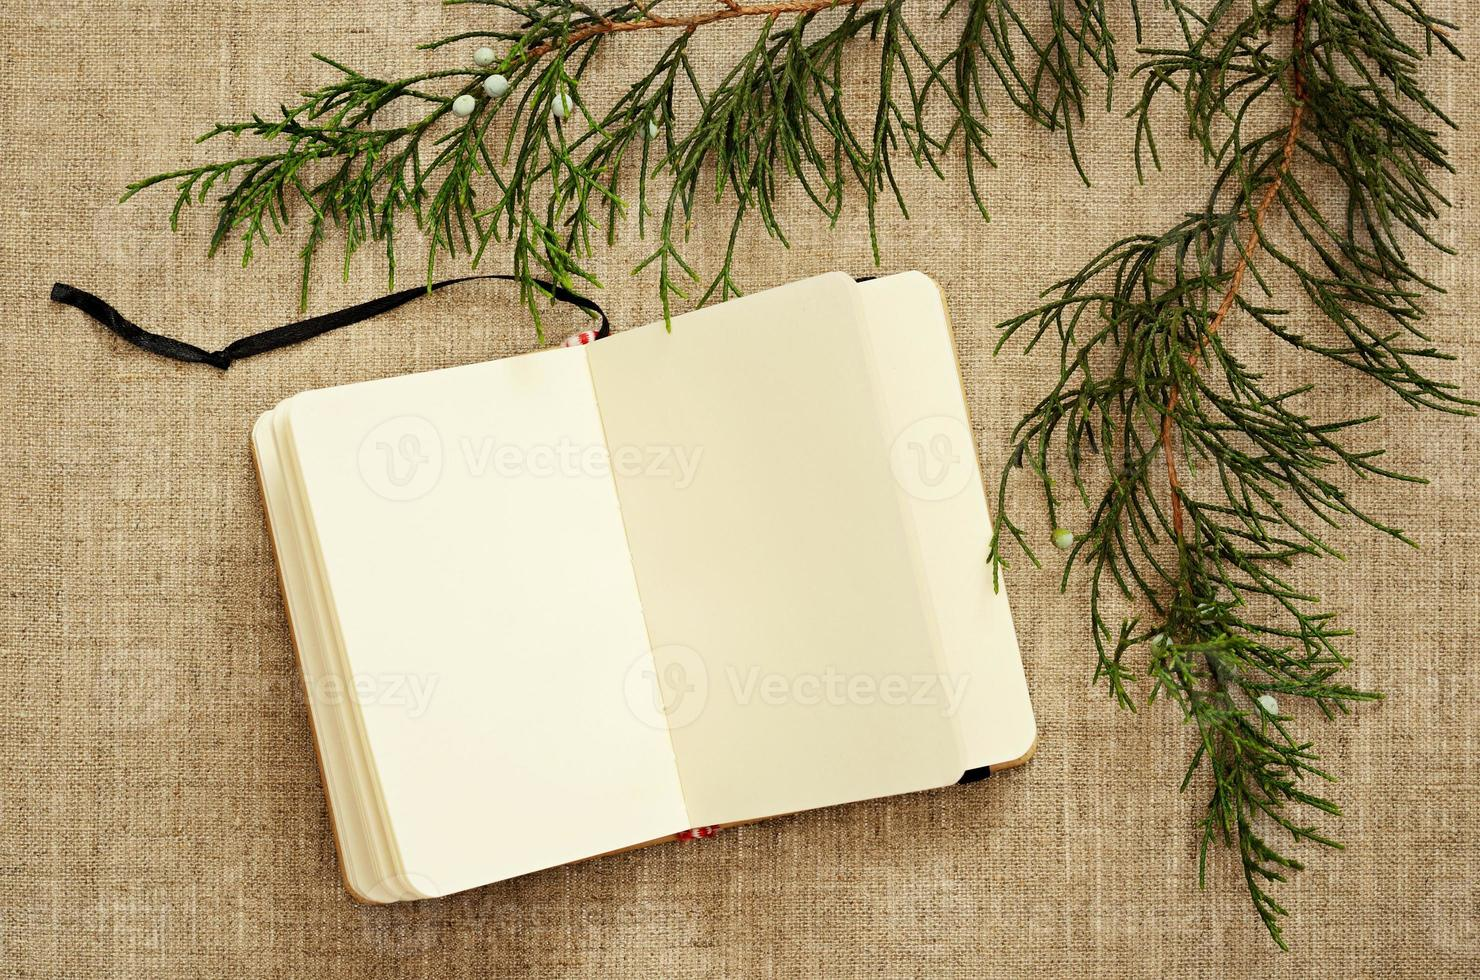 Notebook and juniper branches photo